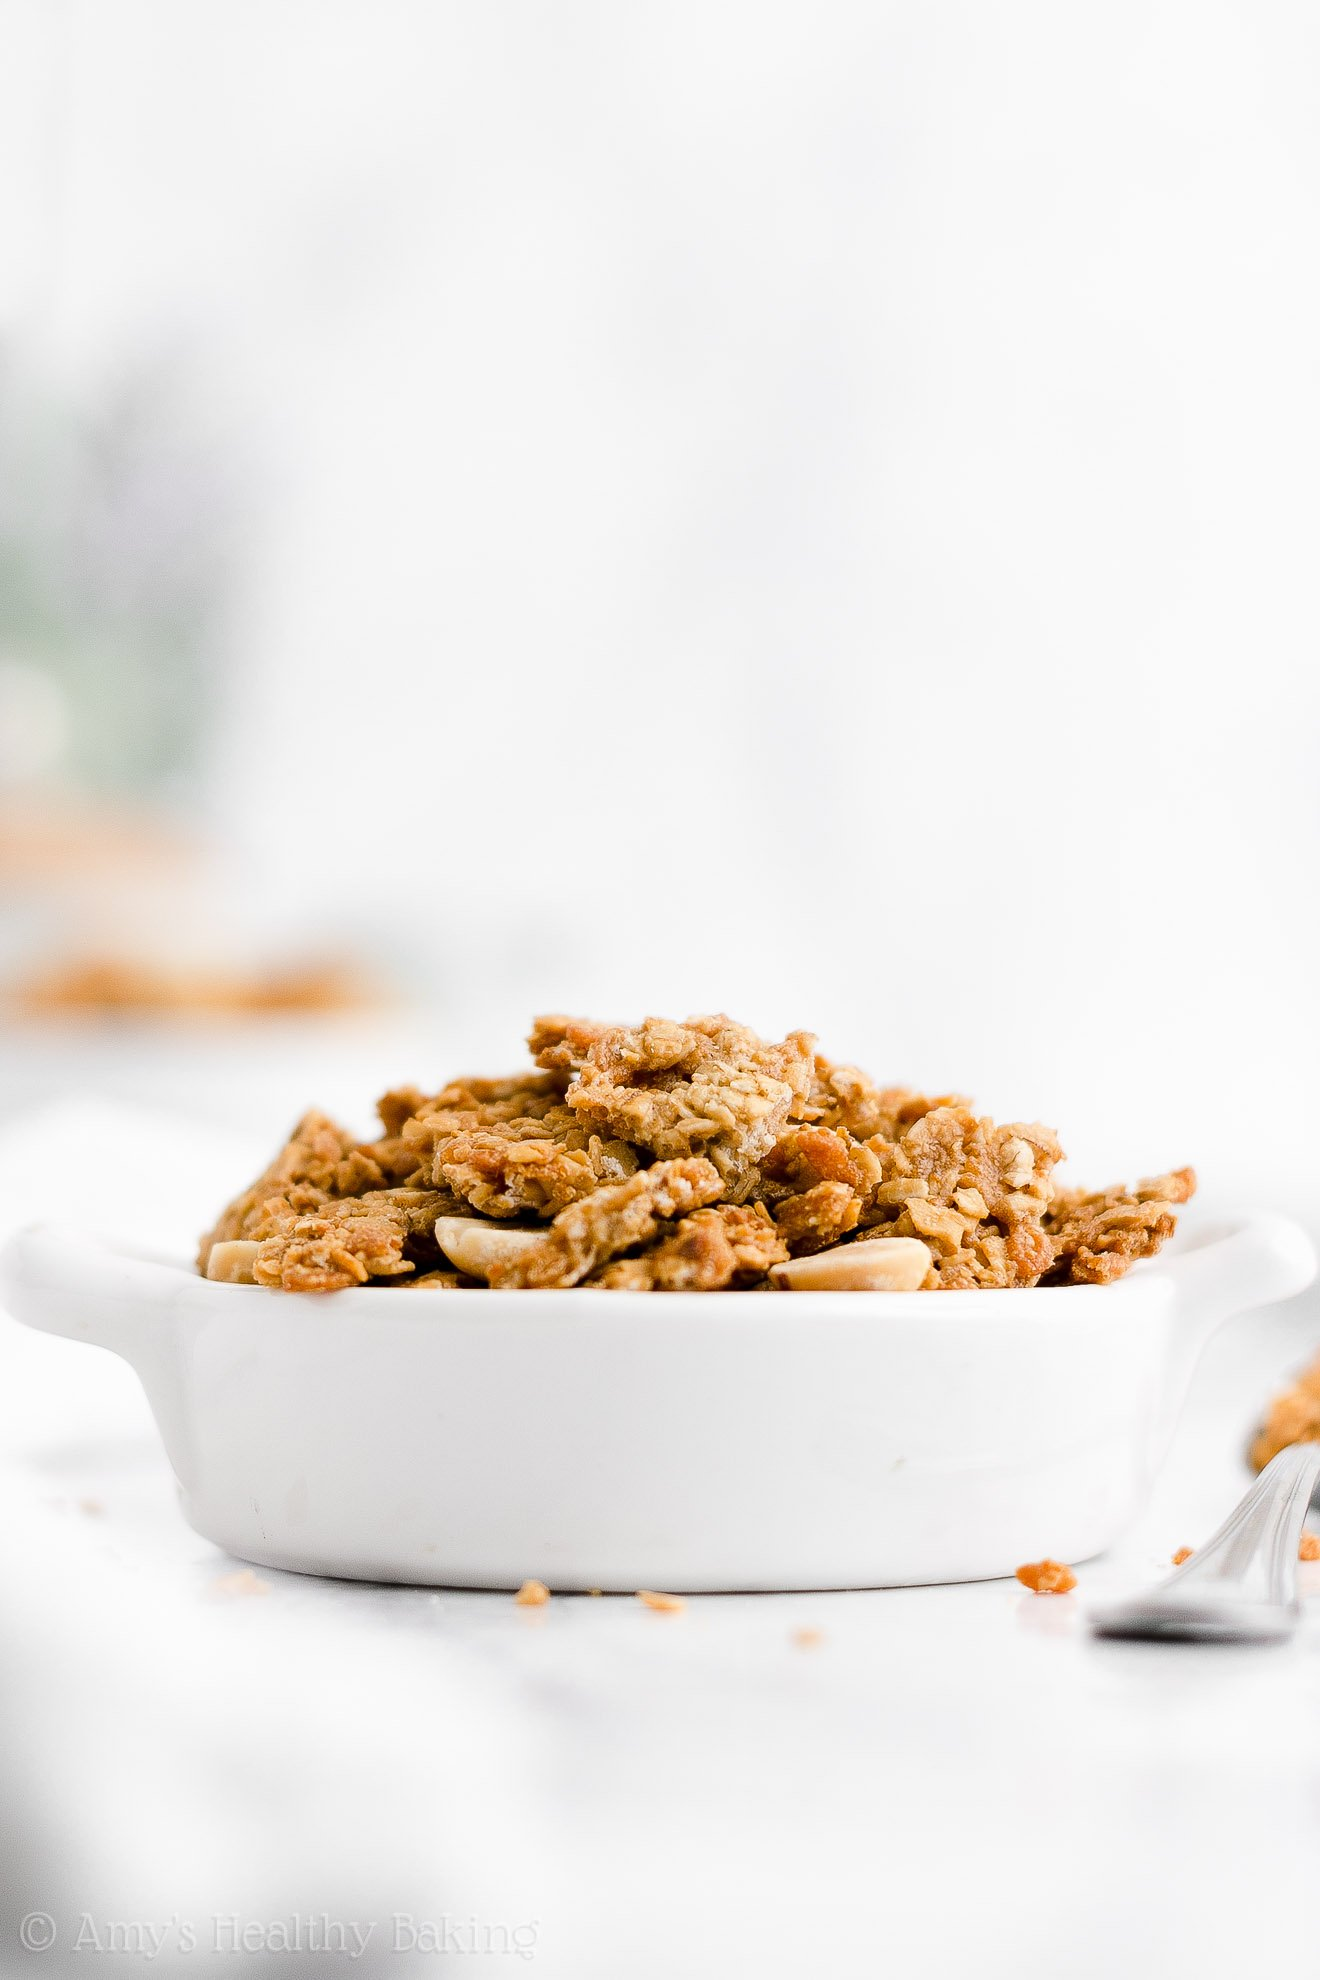 Ultimate Best Easy Healthy Homemade Gluten Free Peanut Butter Granola